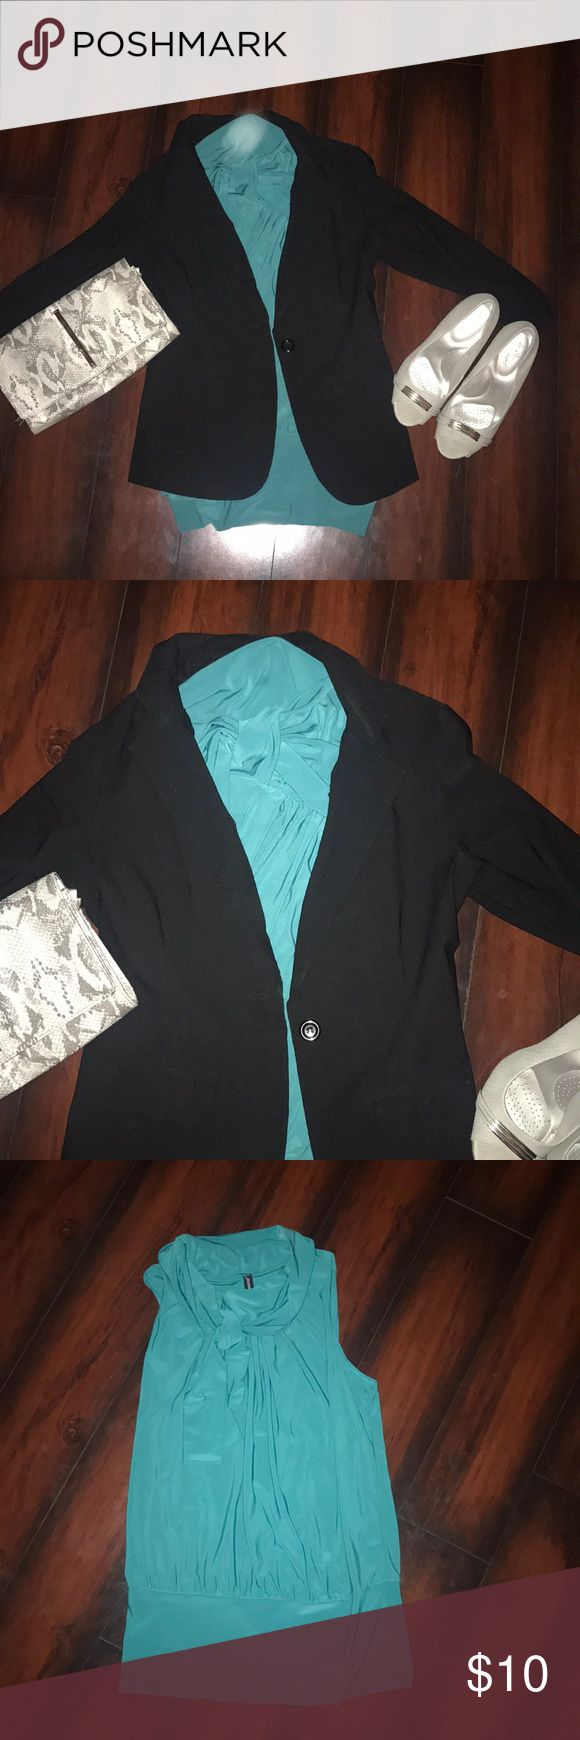 Green sleeveless blouse Green sleeveless blouse. Ties at the collar. Fitted bat the bottom and loose in the middle. Looks GREAT with a blazer and heels! Tops Blouses